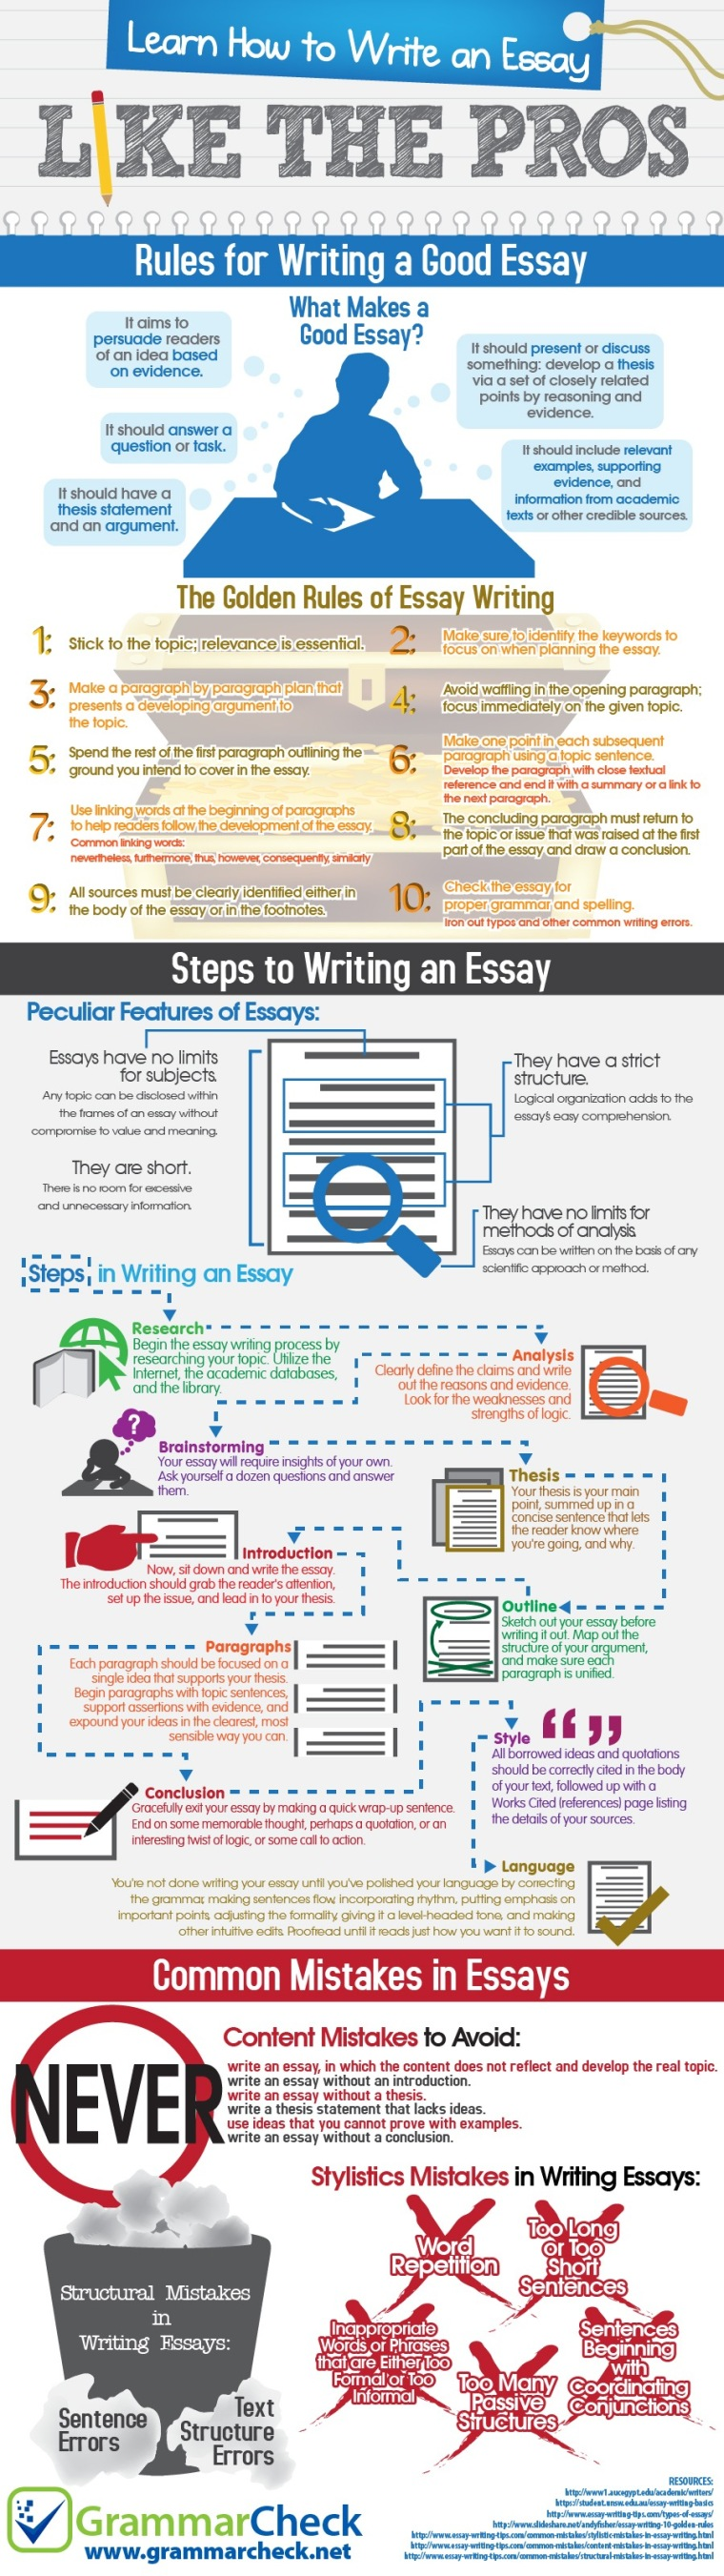 rules for writing a good essay reading writing coffee did you this helpful please let me know in the comments